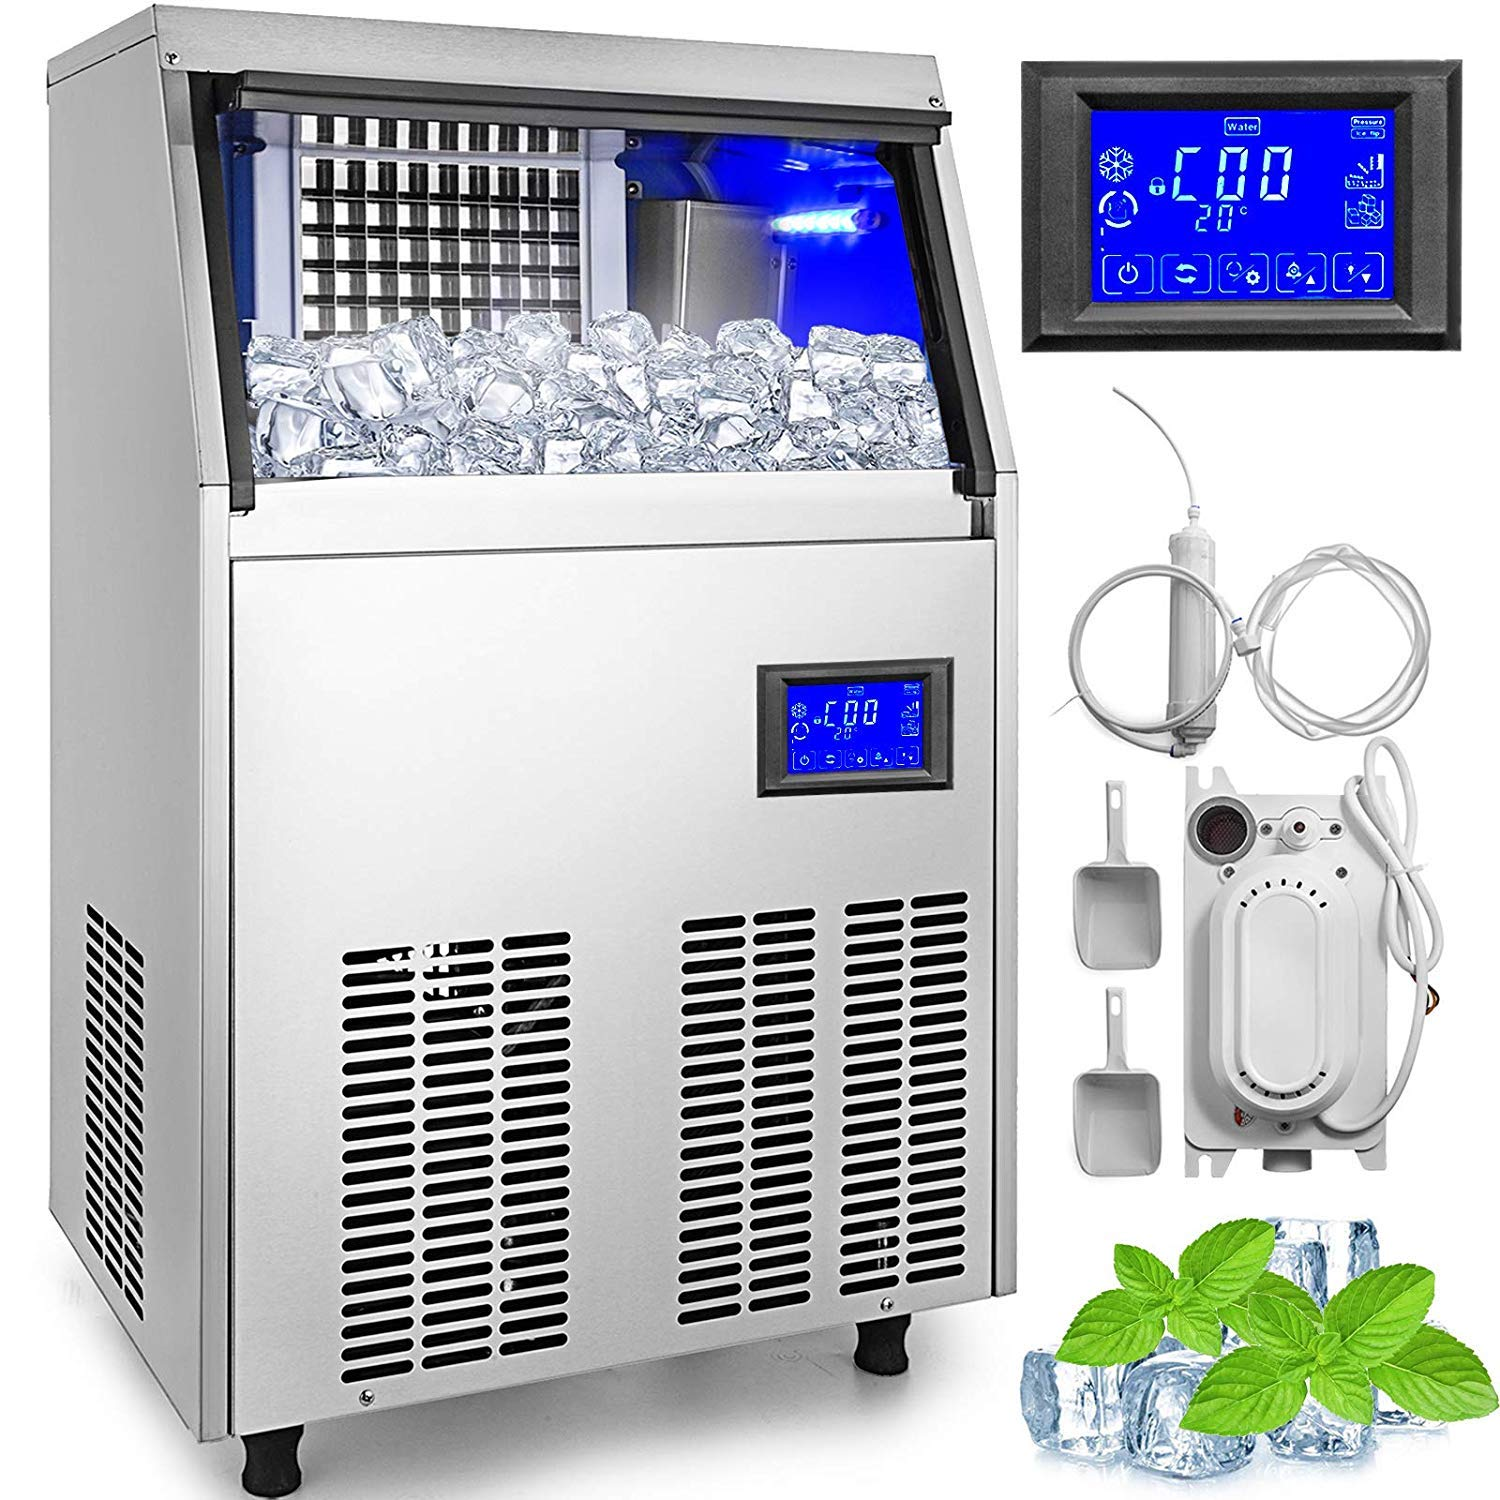 VEVOR Commercial Ice Maker 155LBS in 24Hs with Water Drain Pump 33LBS Storage Stainless Steel 5x9 Cubes LCD Panel Auto Clean for Bar Home Supermarkets, Sliver